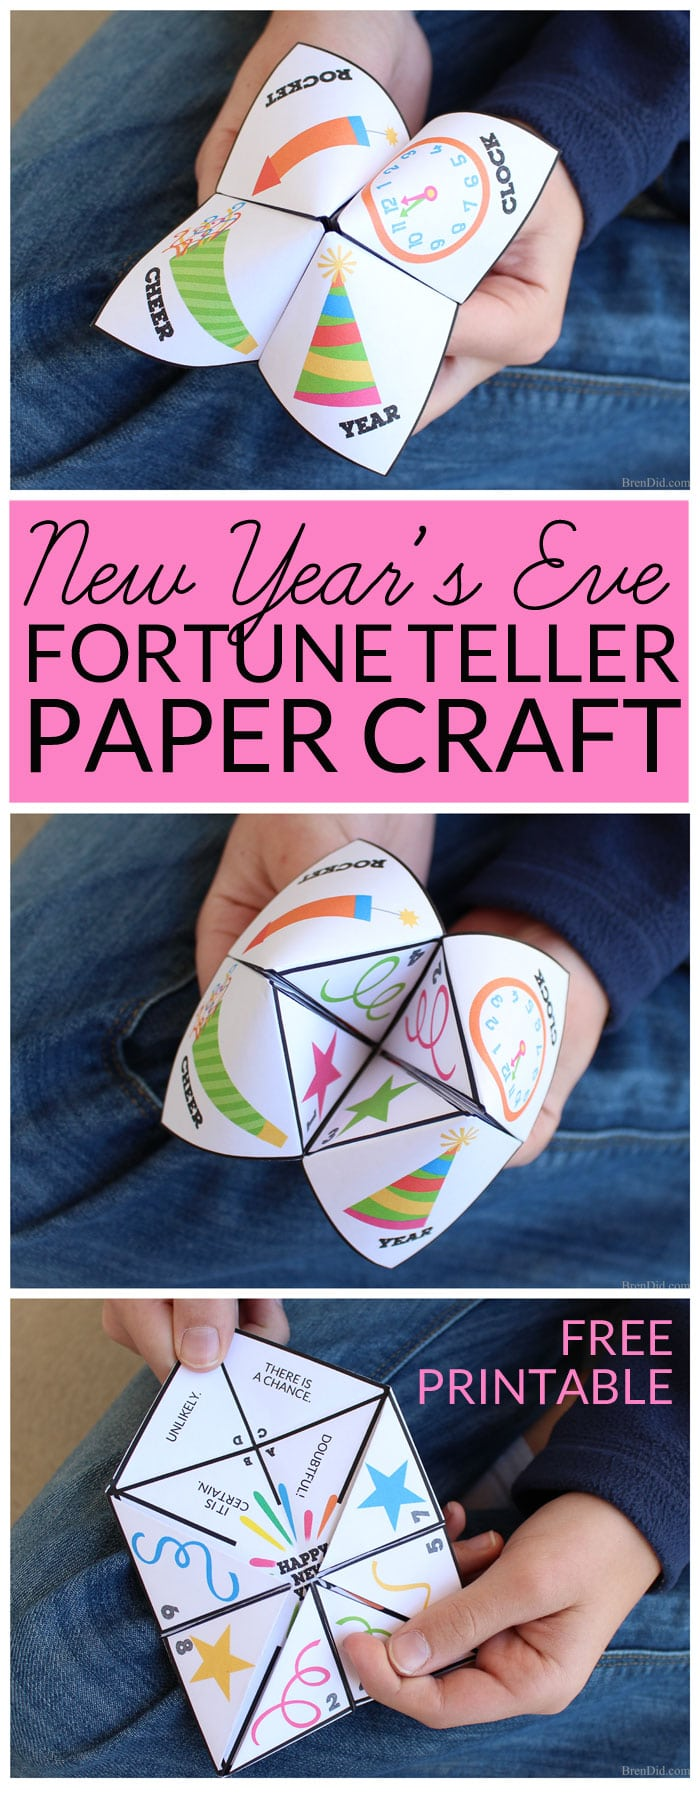 "Make New Year's Eve a fun family celebration! This free printable New Year's Eve party game is great for both kids and adults. The paper fortune teller will ""magically"" predict the answers your most burning questions for the next year as you select pictures and numbers."